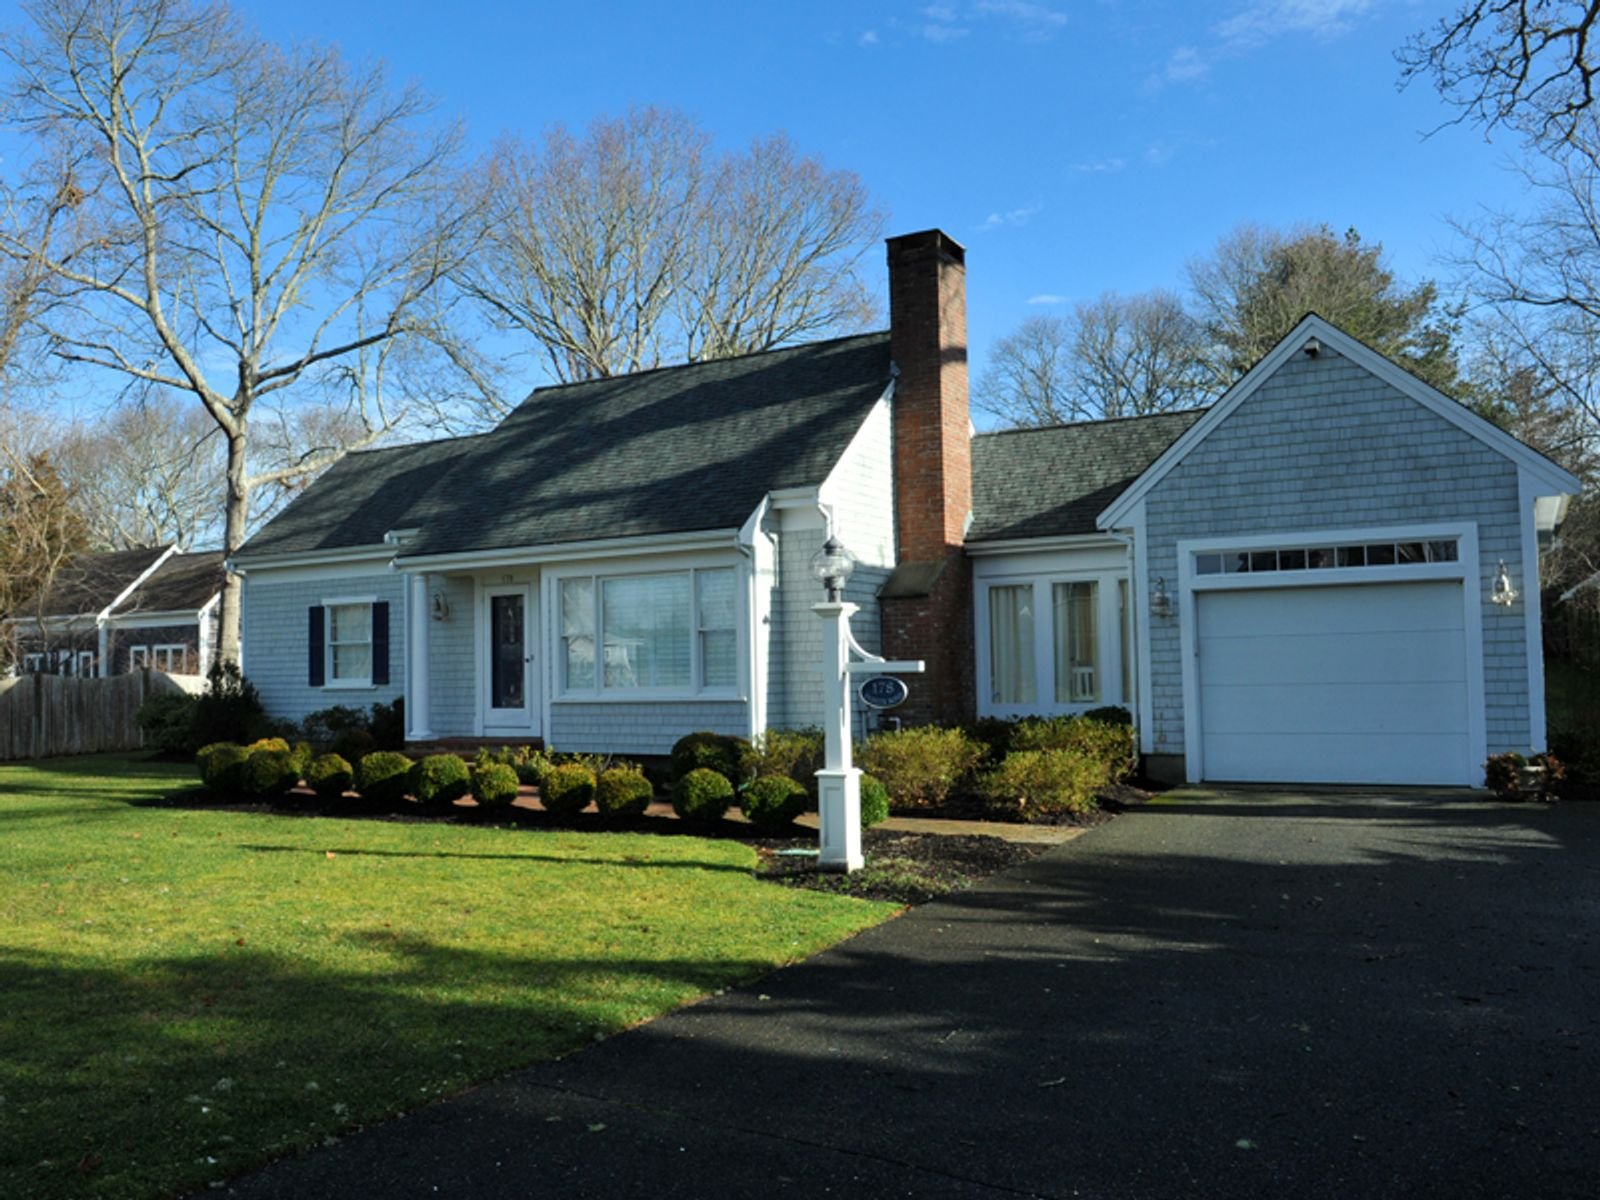 Osterville Opportunity, Osterville MA Single Family Home - Cape Cod Real Estate